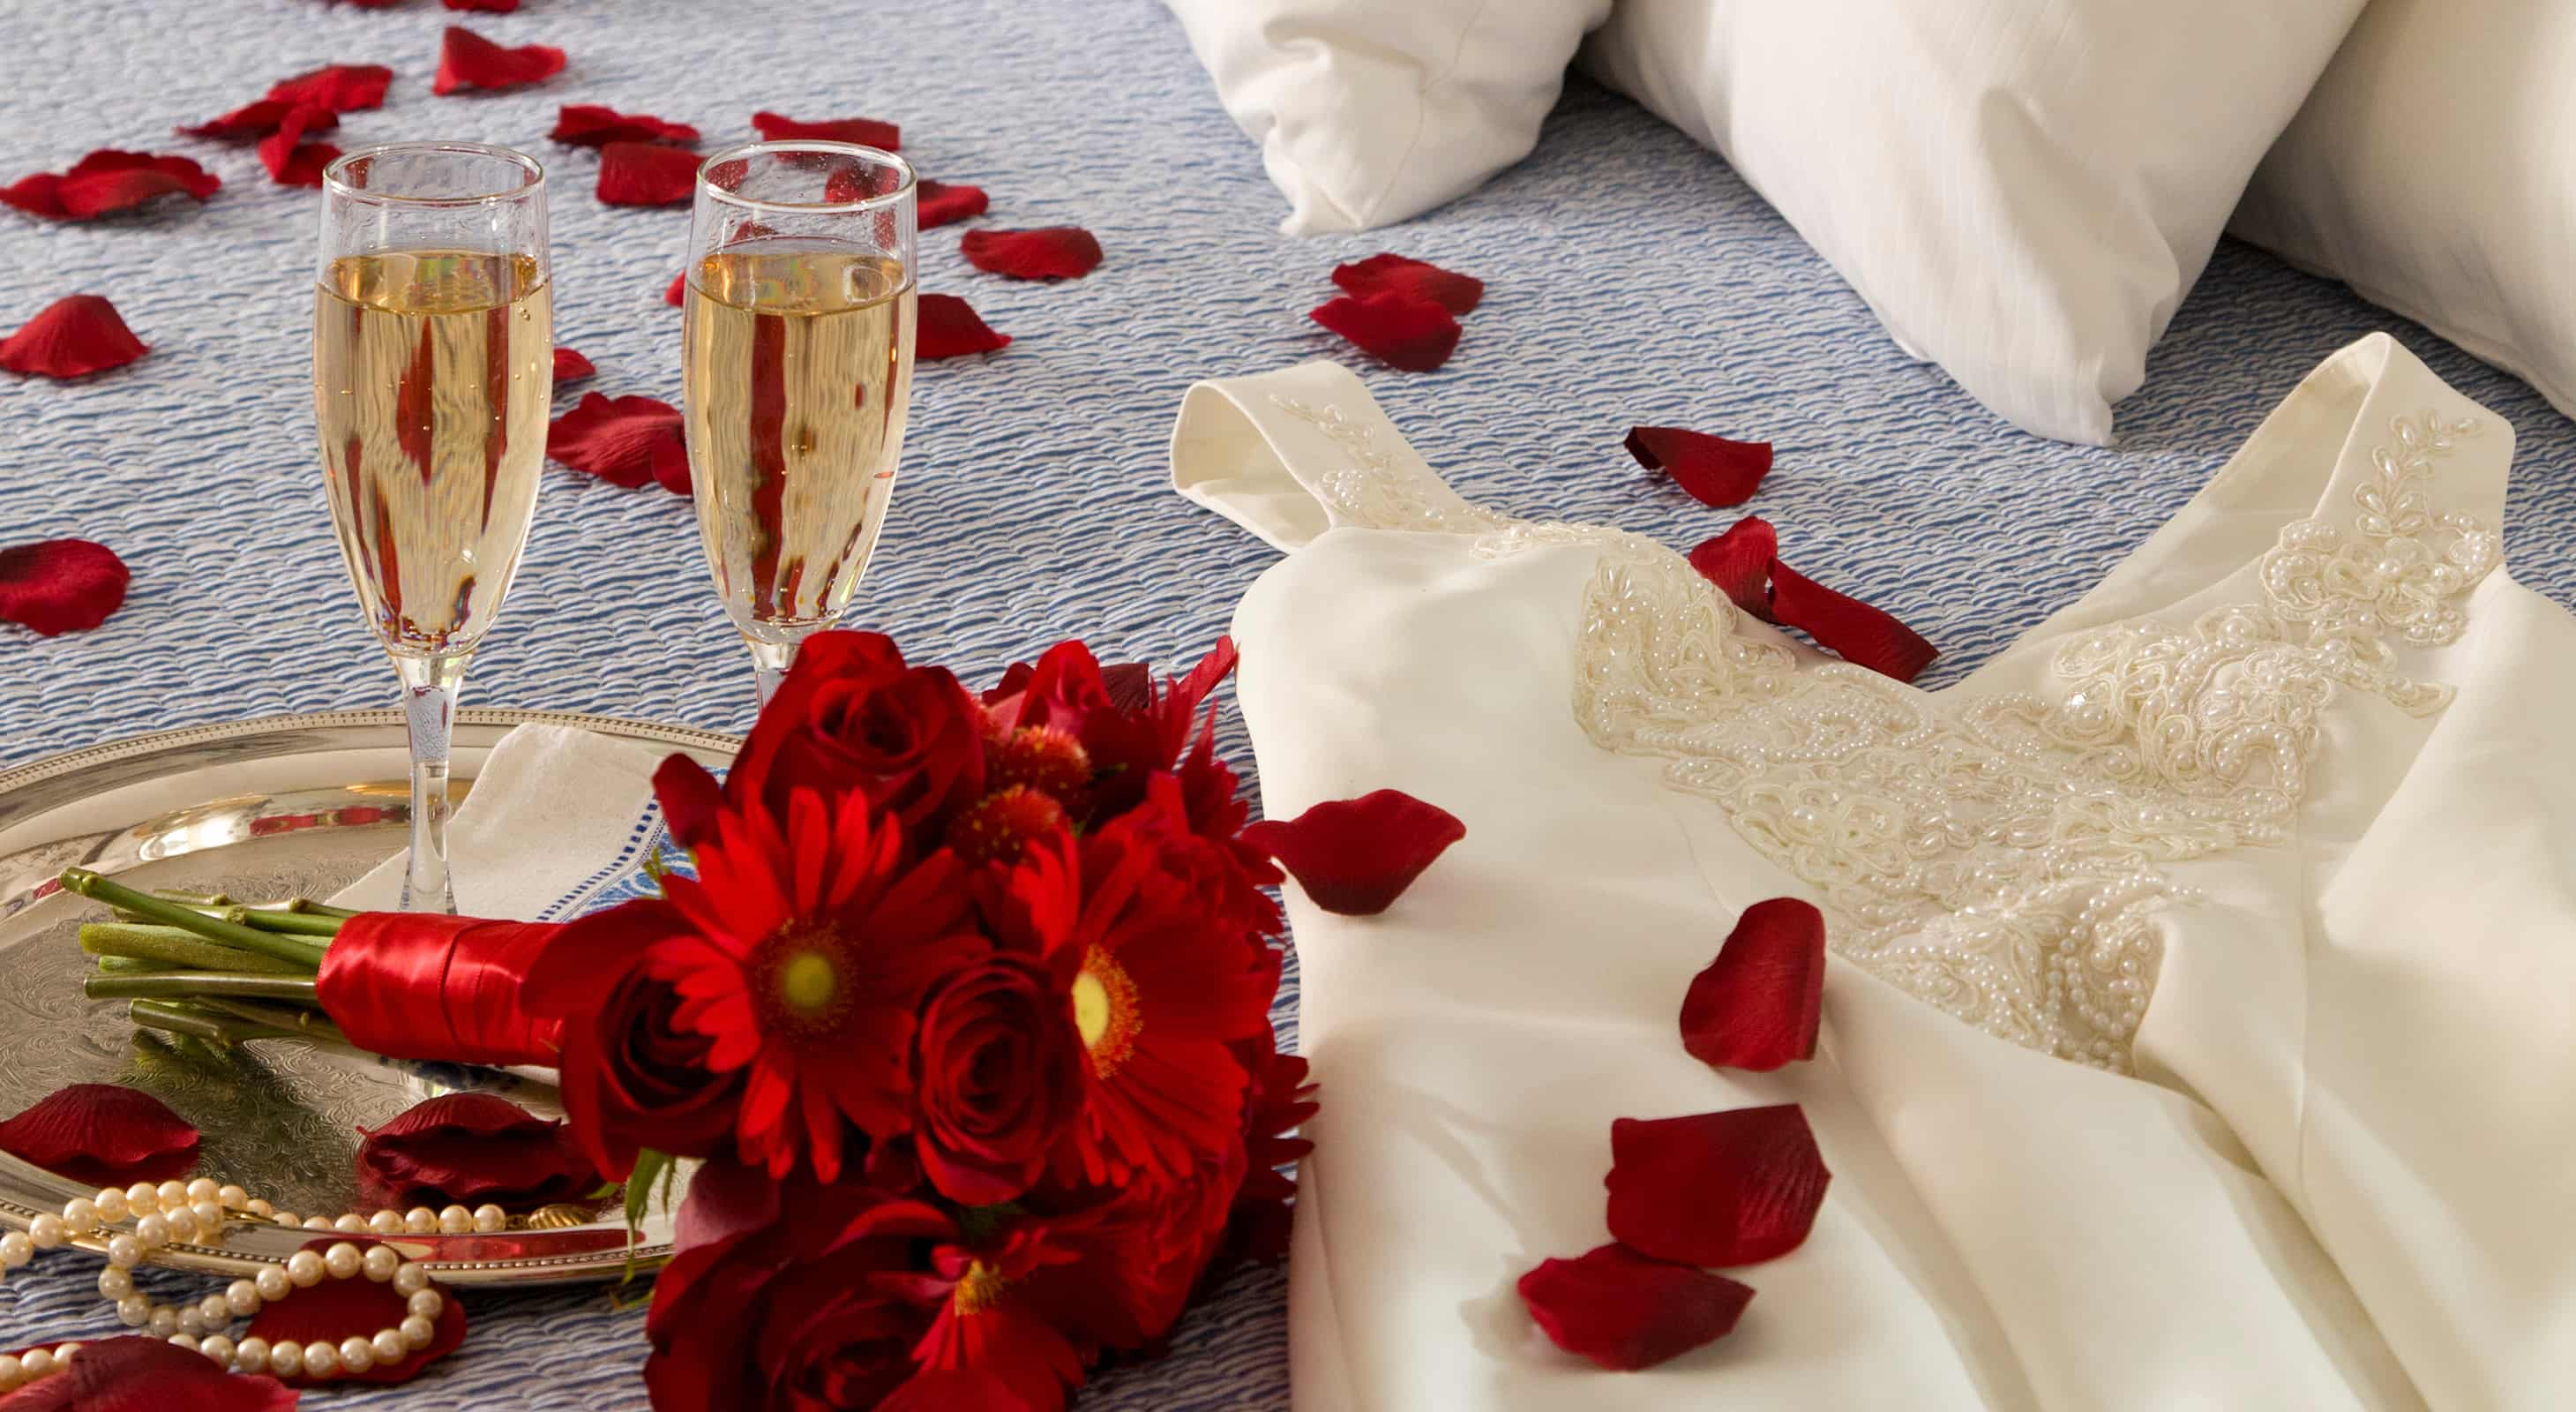 Champagne, flowers and wedding dress on bed